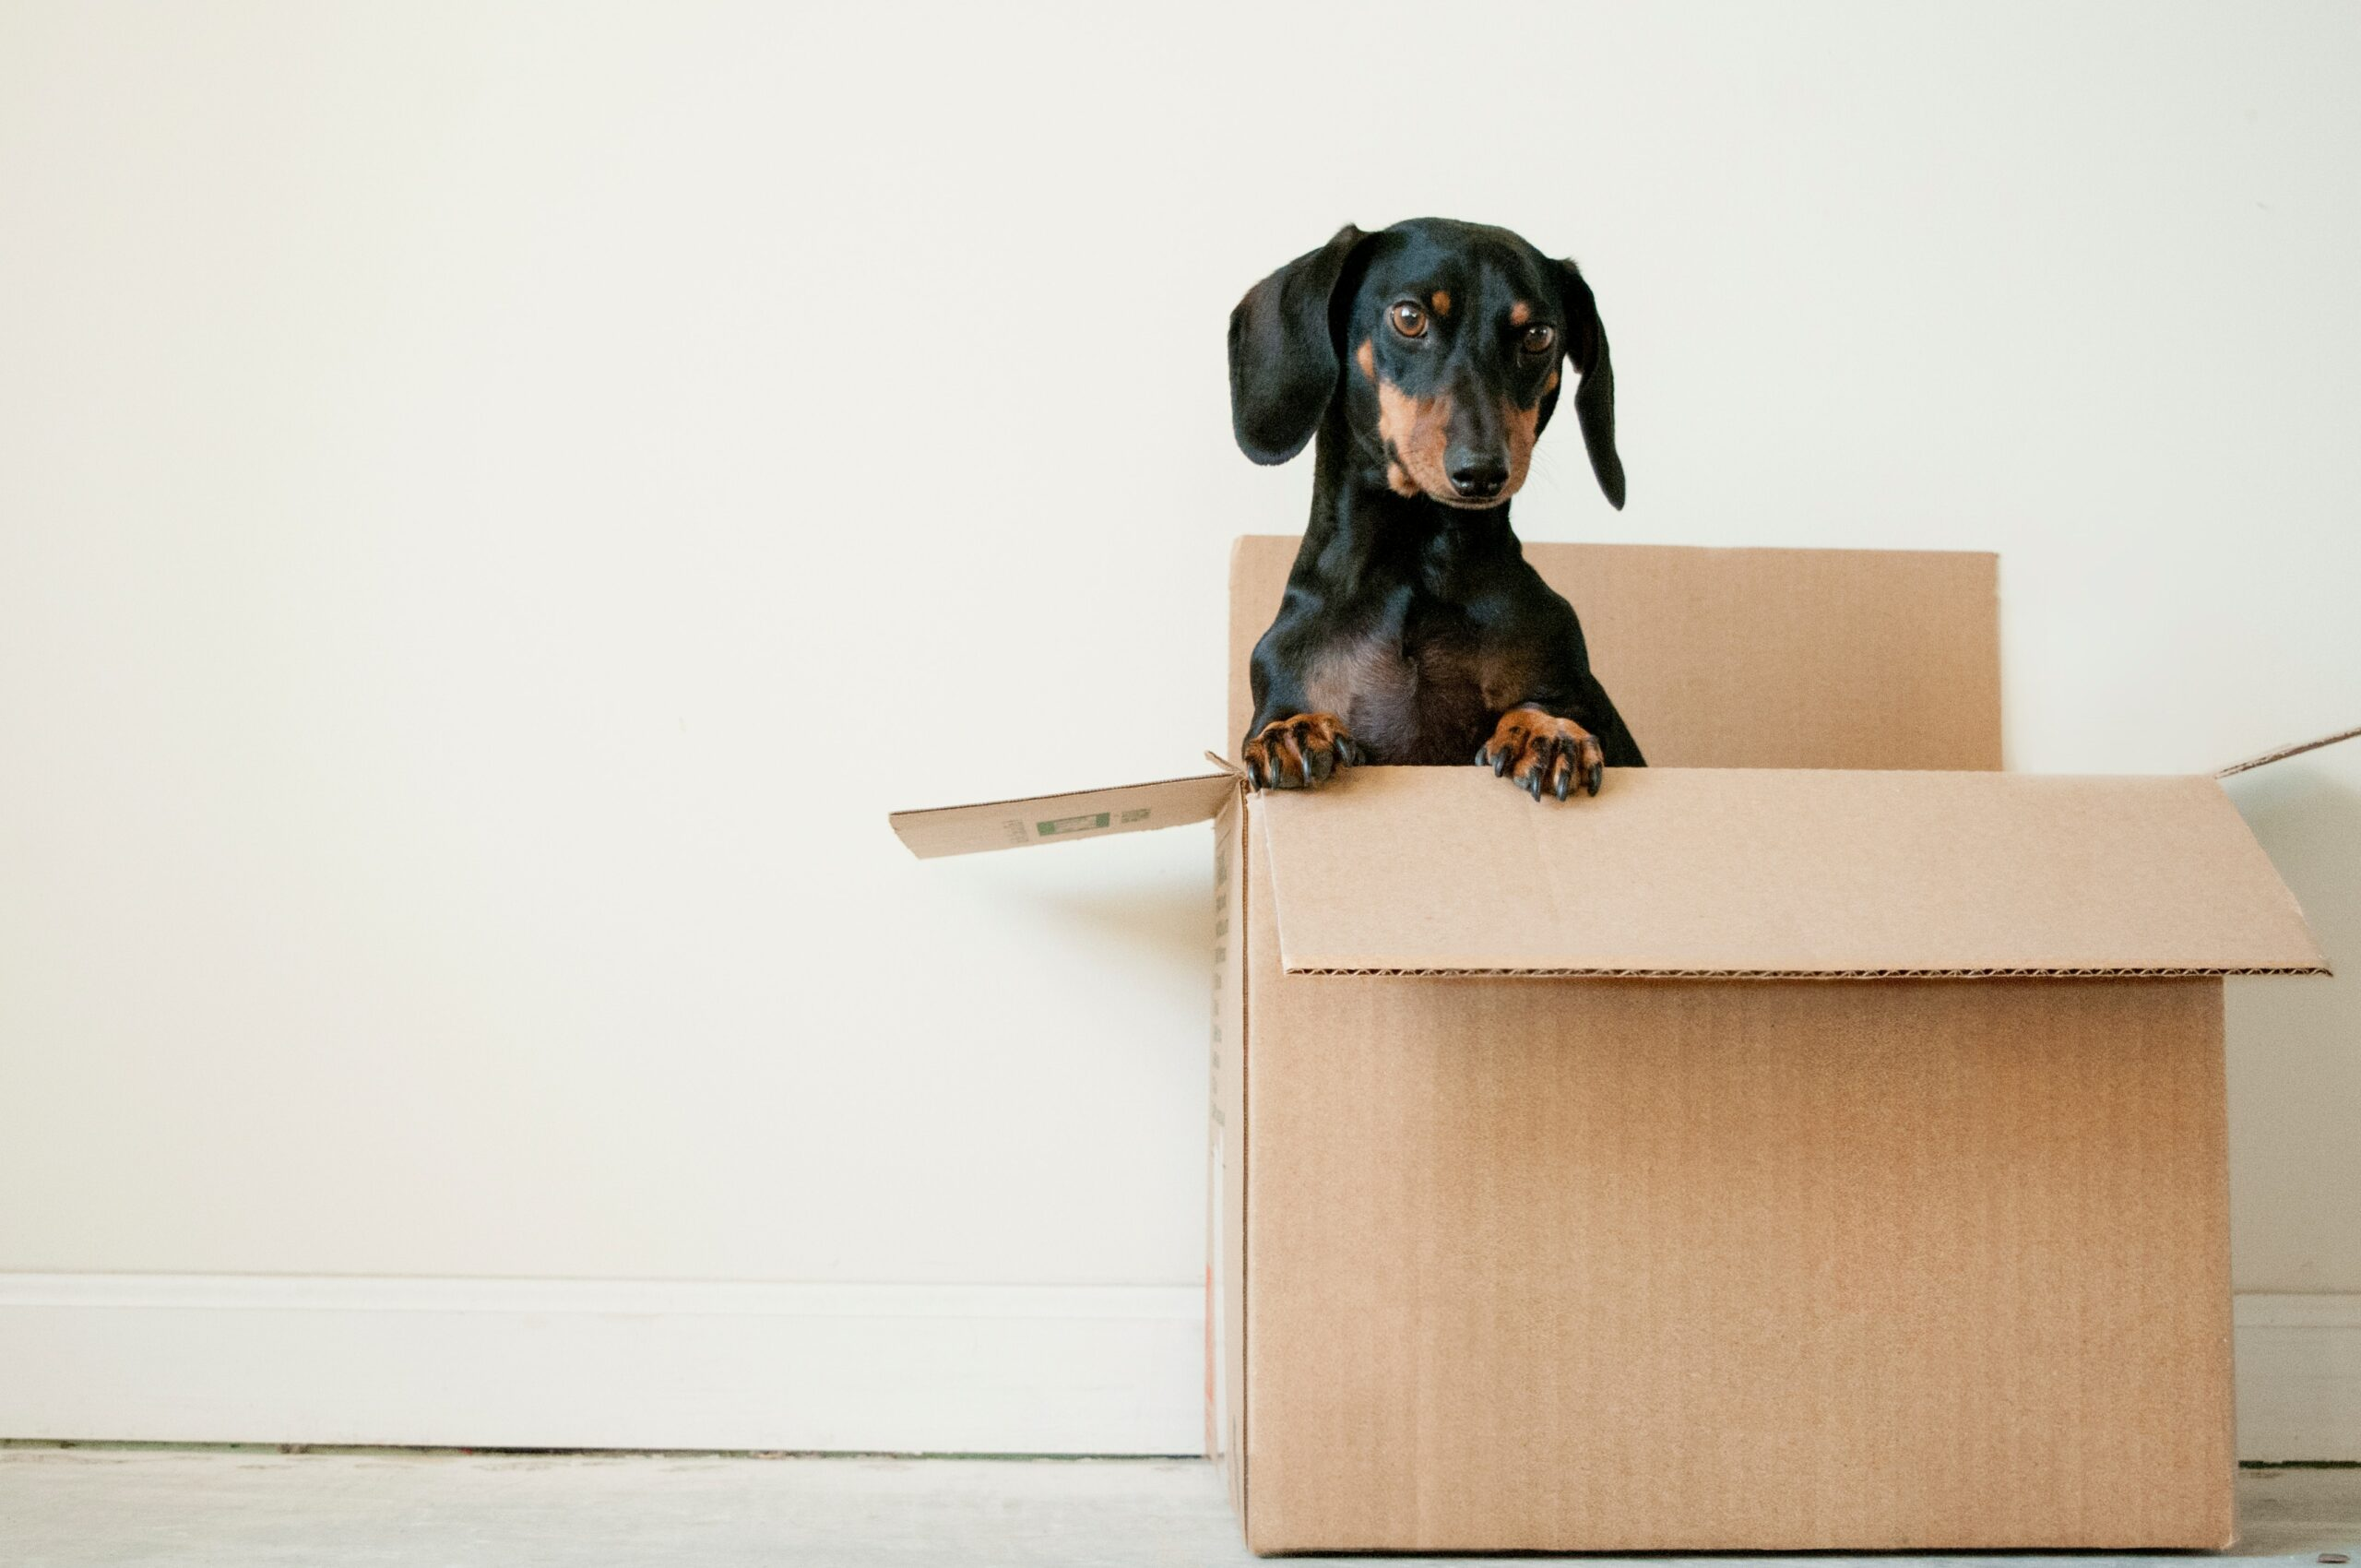 A black and brown dachshund puppy peaking out of a brown moving box.